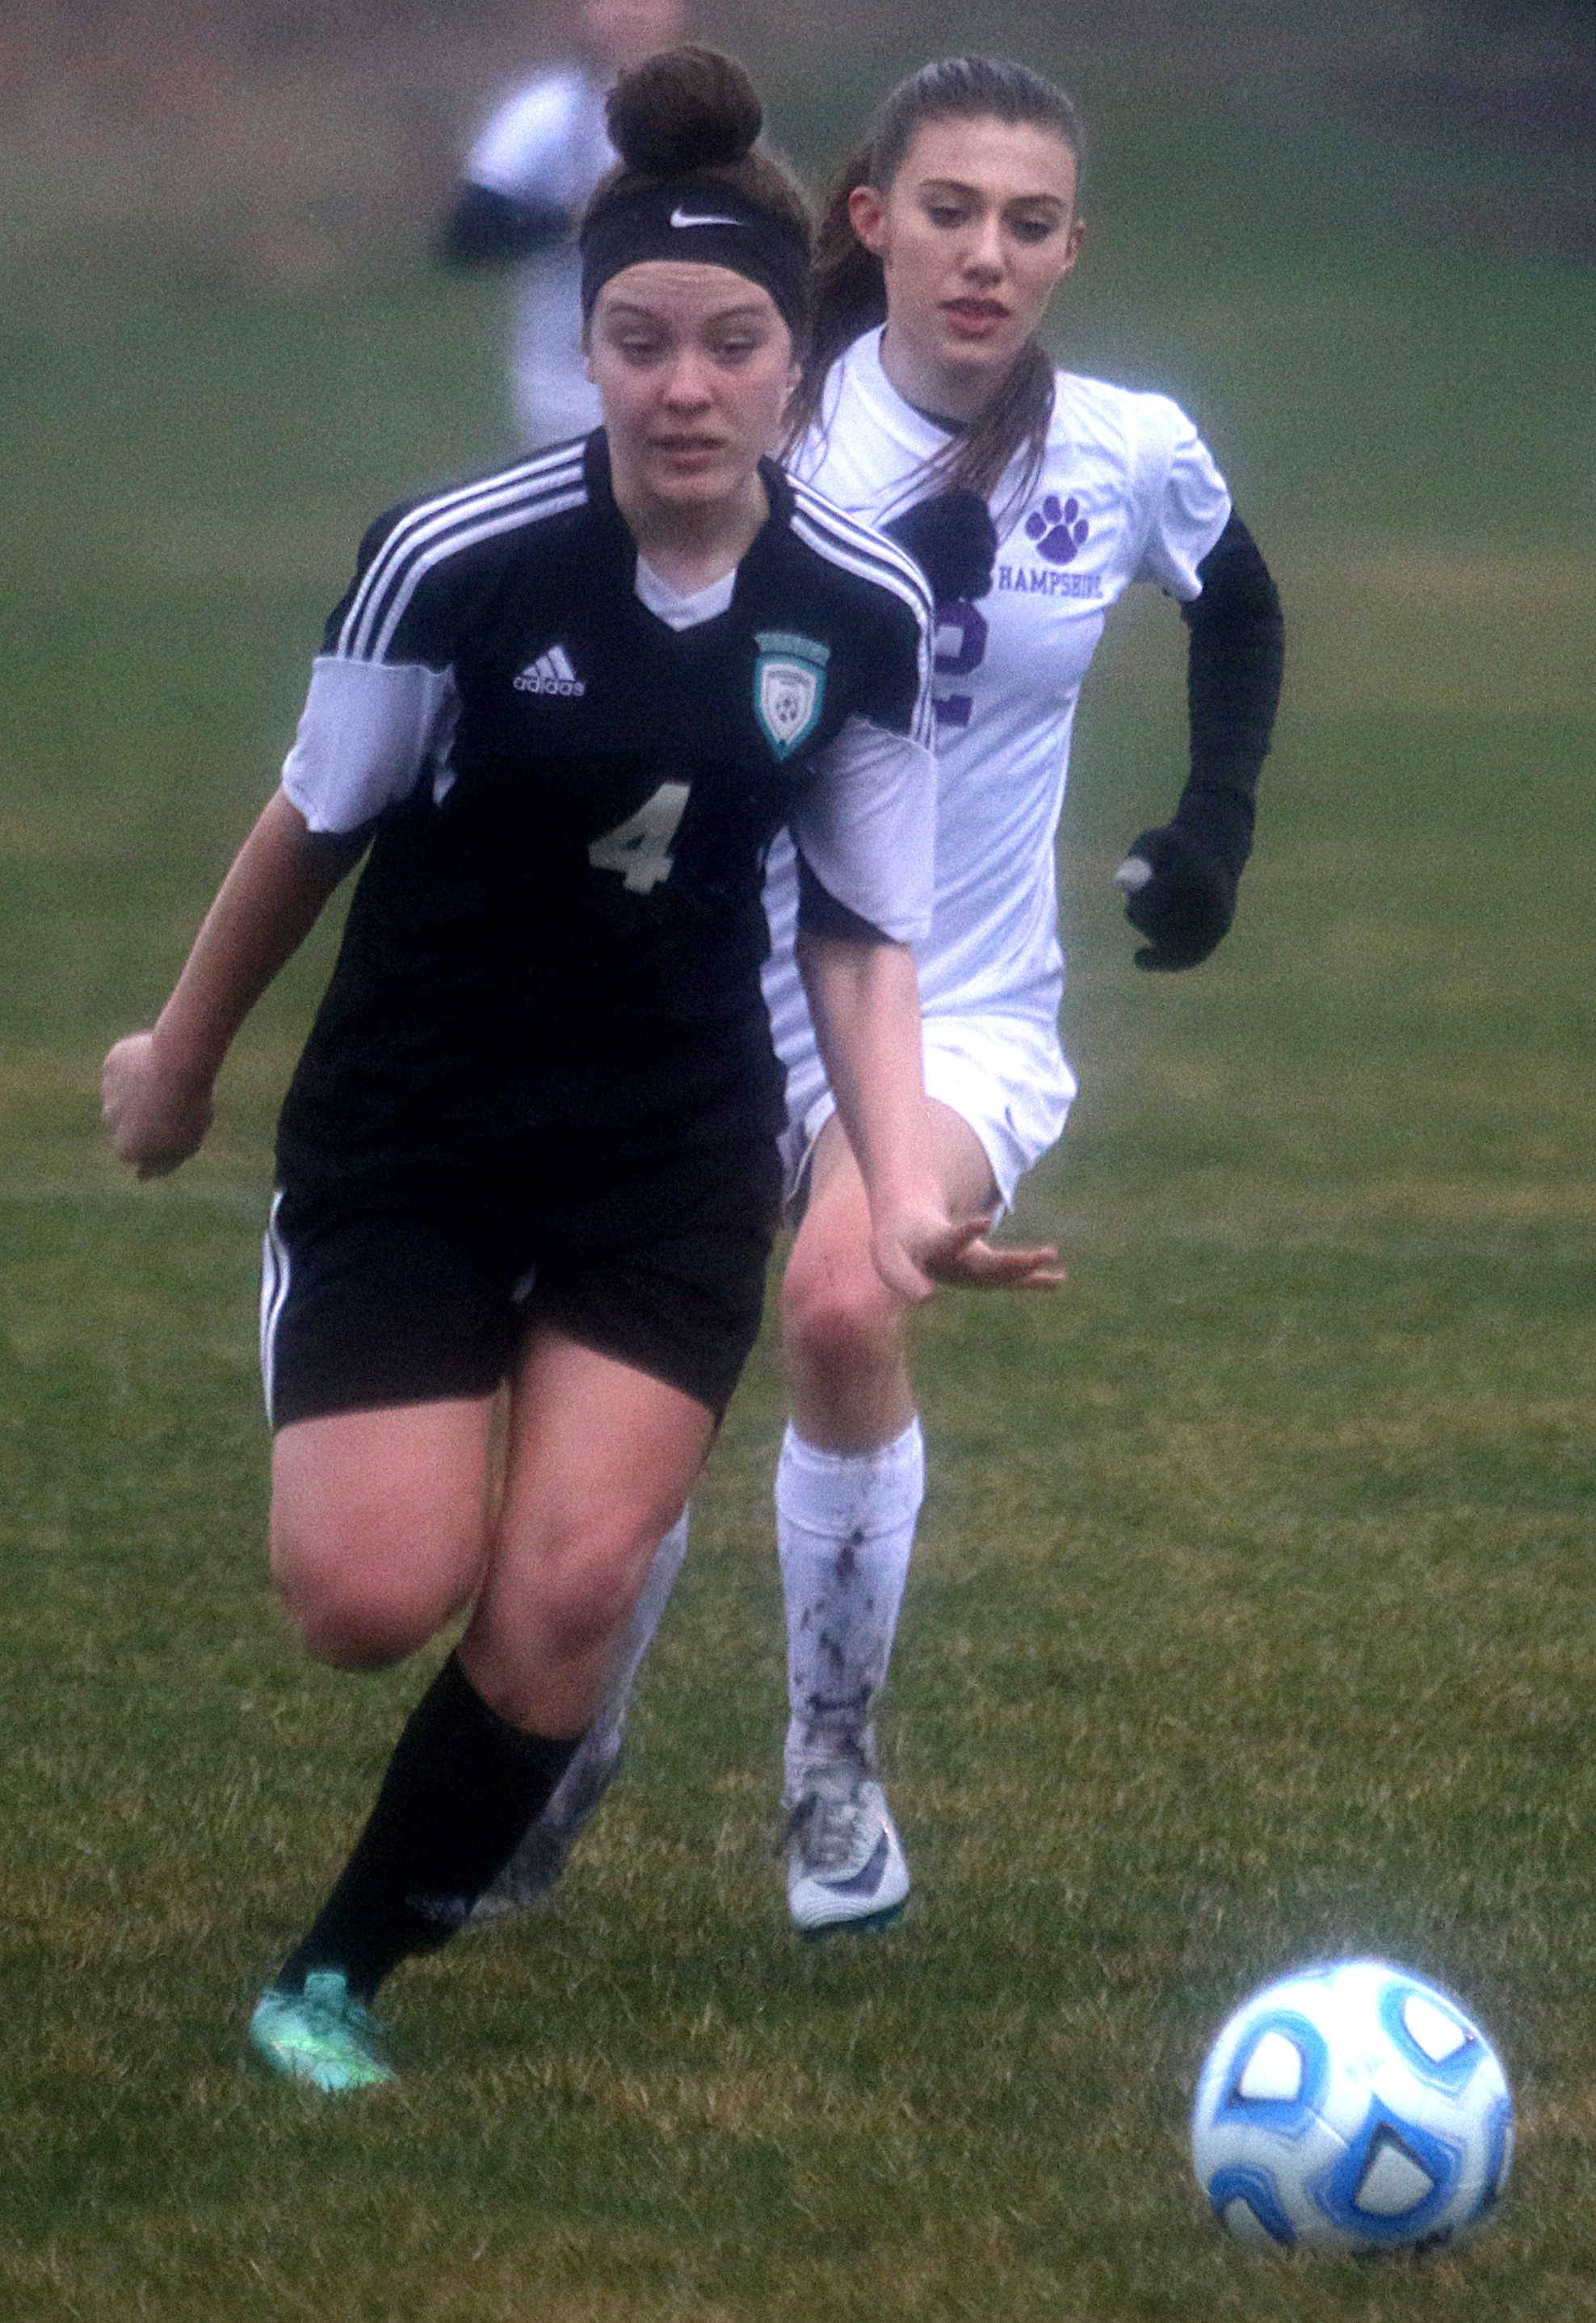 Hampshire's Morgan Heileman, back, races Woodstock North's Abigail Svitak, front, for the ball during varsity girls soccer action at Hampshire Monday night.